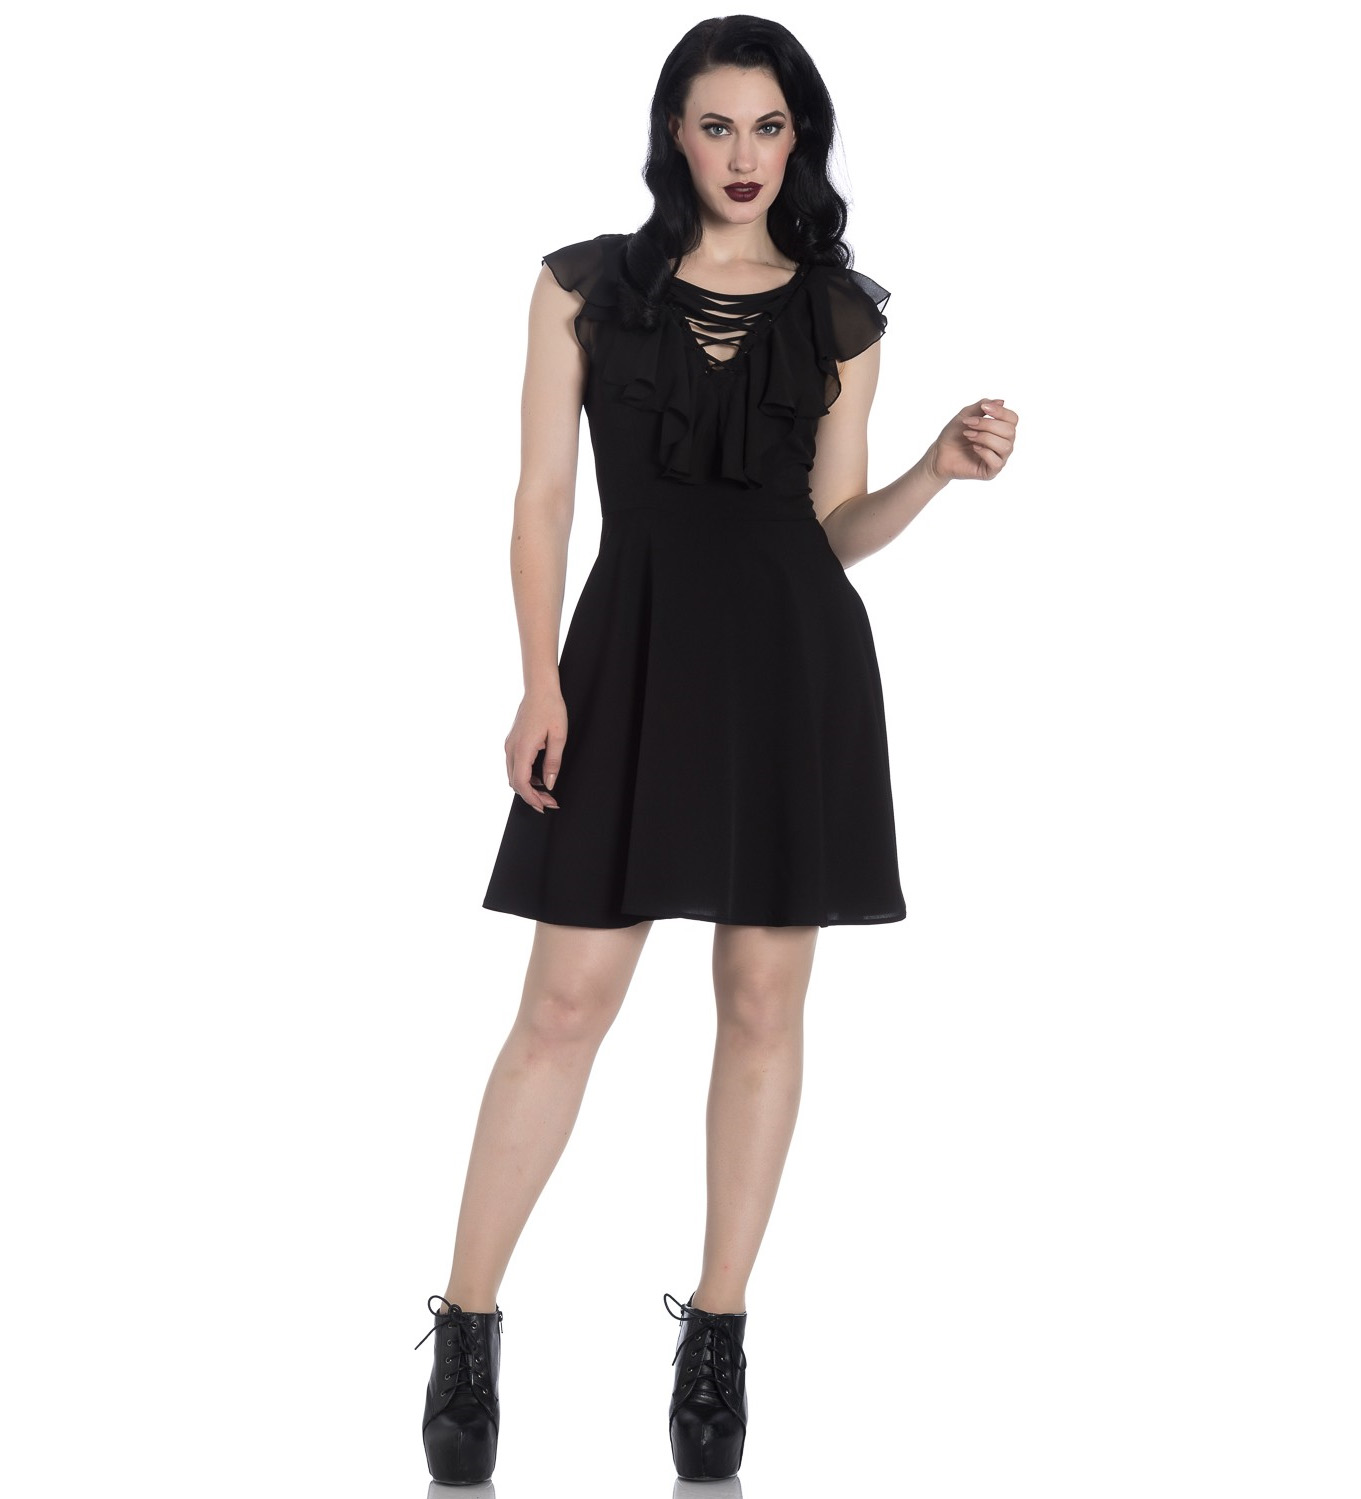 Hell-Bunny-Floaty-Lace-Up-Goth-Witch-Punk-Mini-Dress-ONYX-Black-All-Sizes thumbnail 39